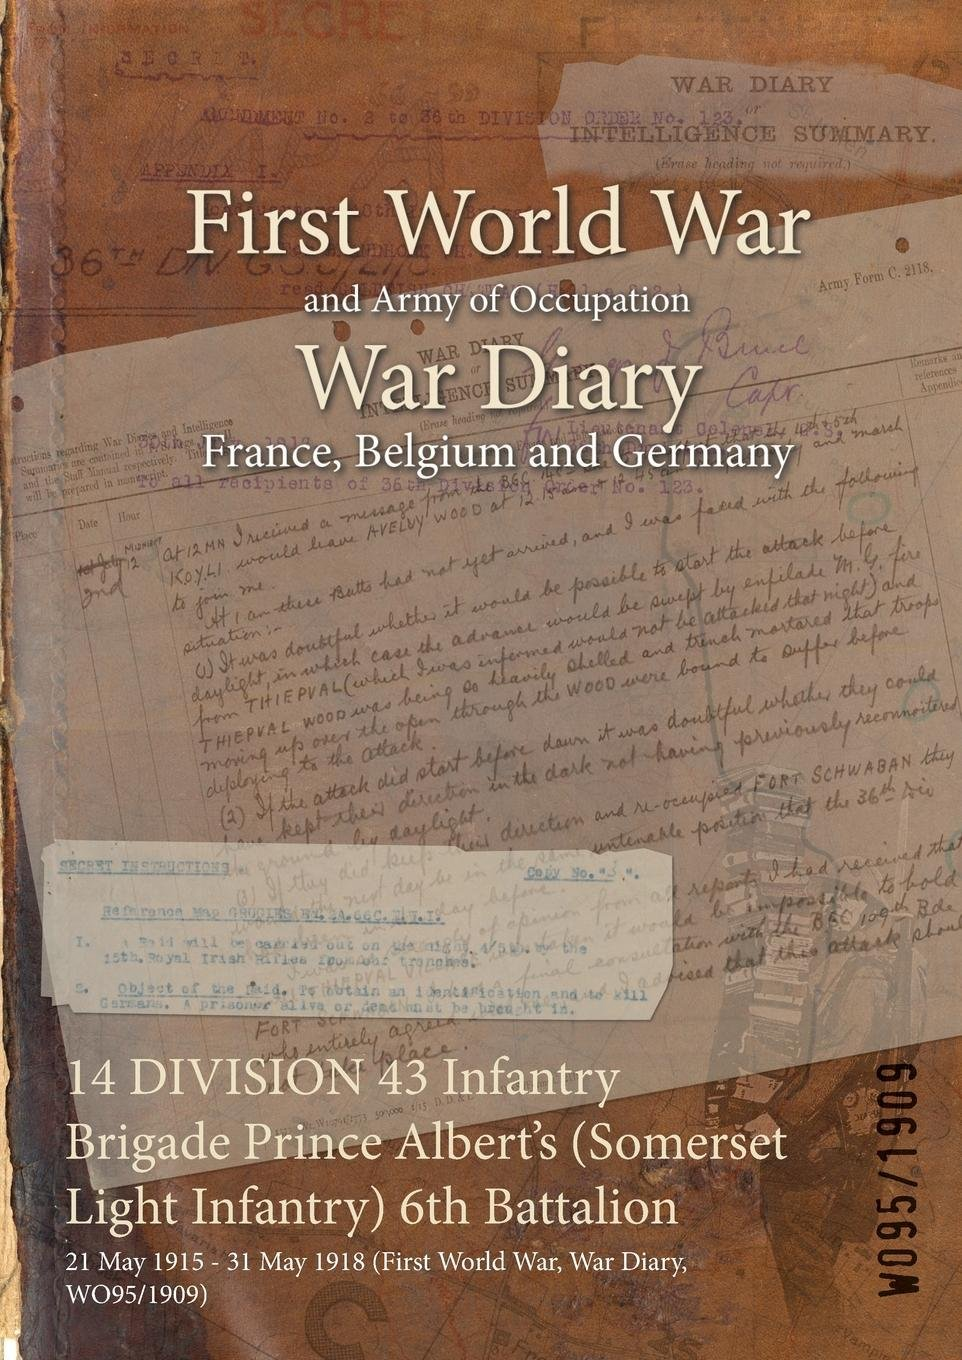 14 Division 43 Infantry Brigade Prince Albert's (Somerset Light Infantry) 6th Battalion: 21 May 1915 - 31 May 1918 (First World War, War Diary, Wo95/1909) PDF